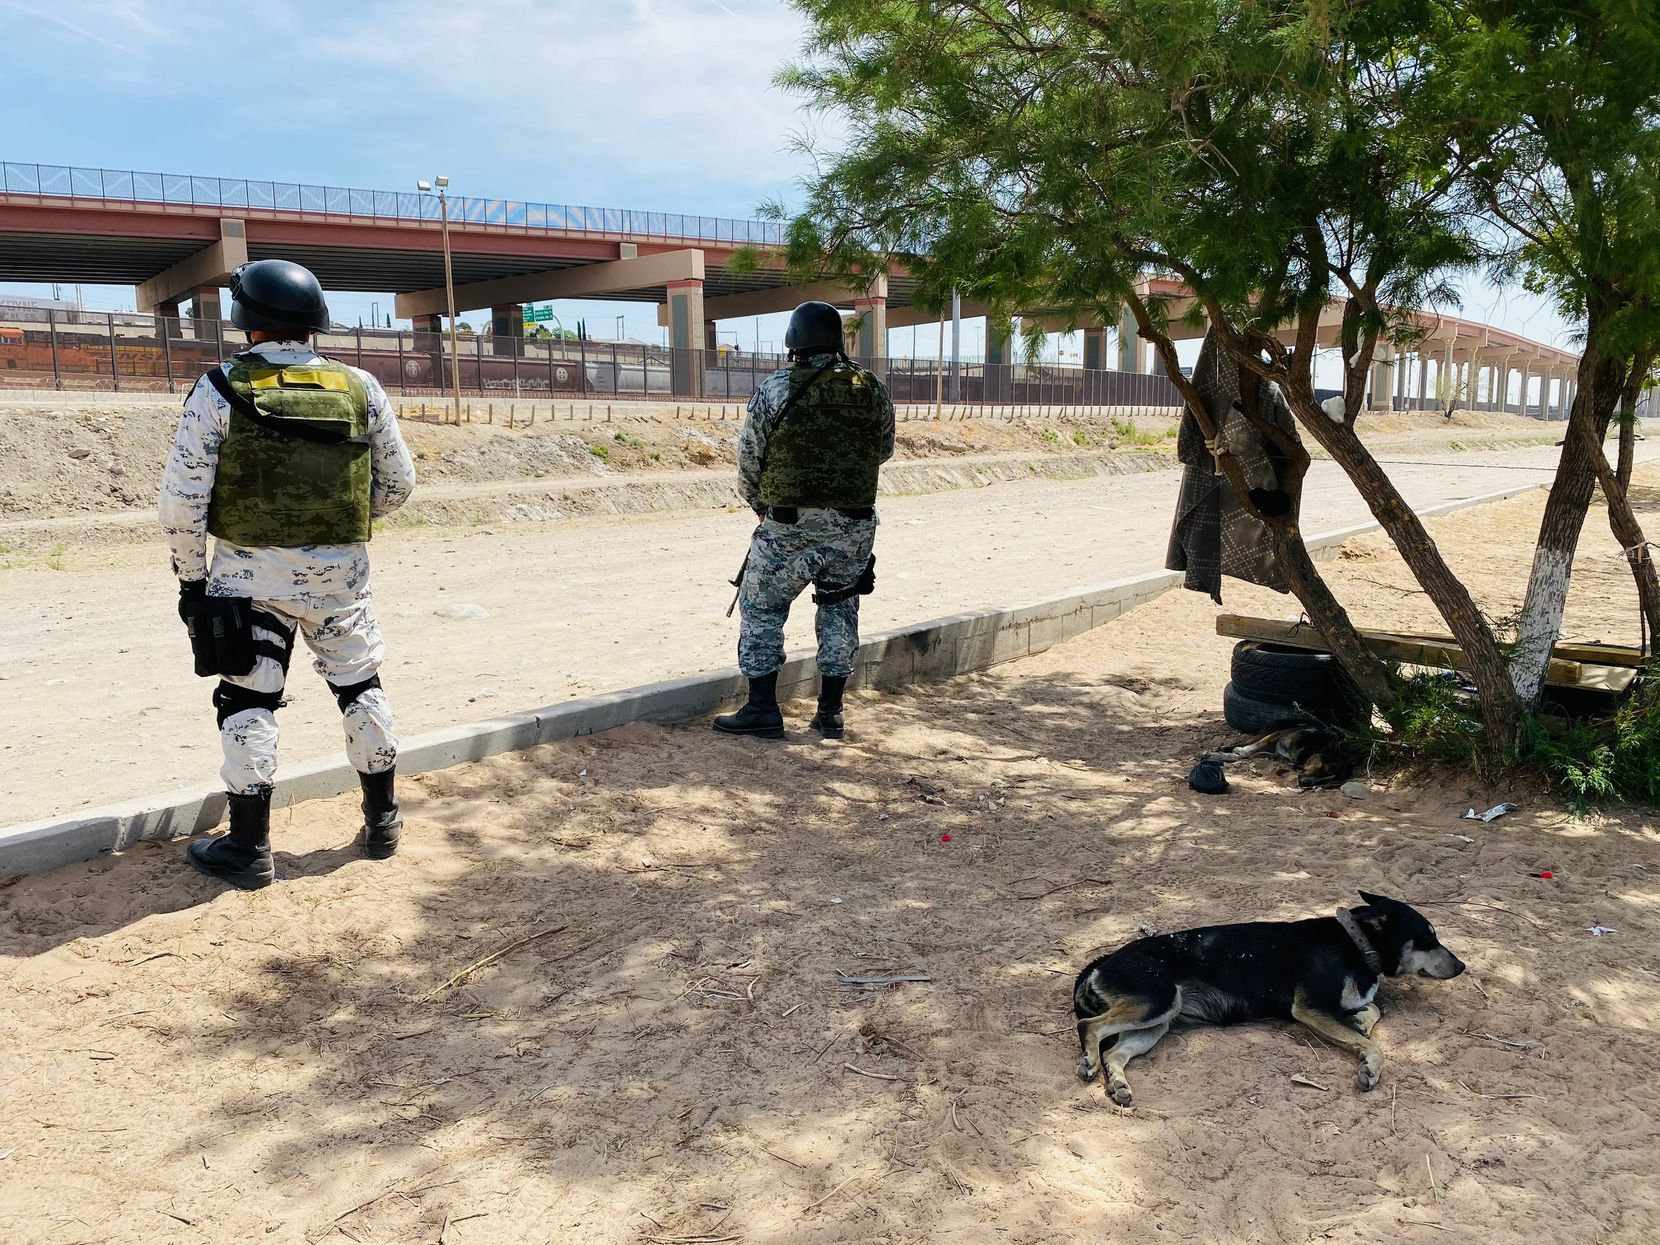 Mexico's National Guard has re-emerged with renewed focus on slowing the flow of migrants trying to reach the United States. These guardsmen stand across the border from El Paso's downtown this week.